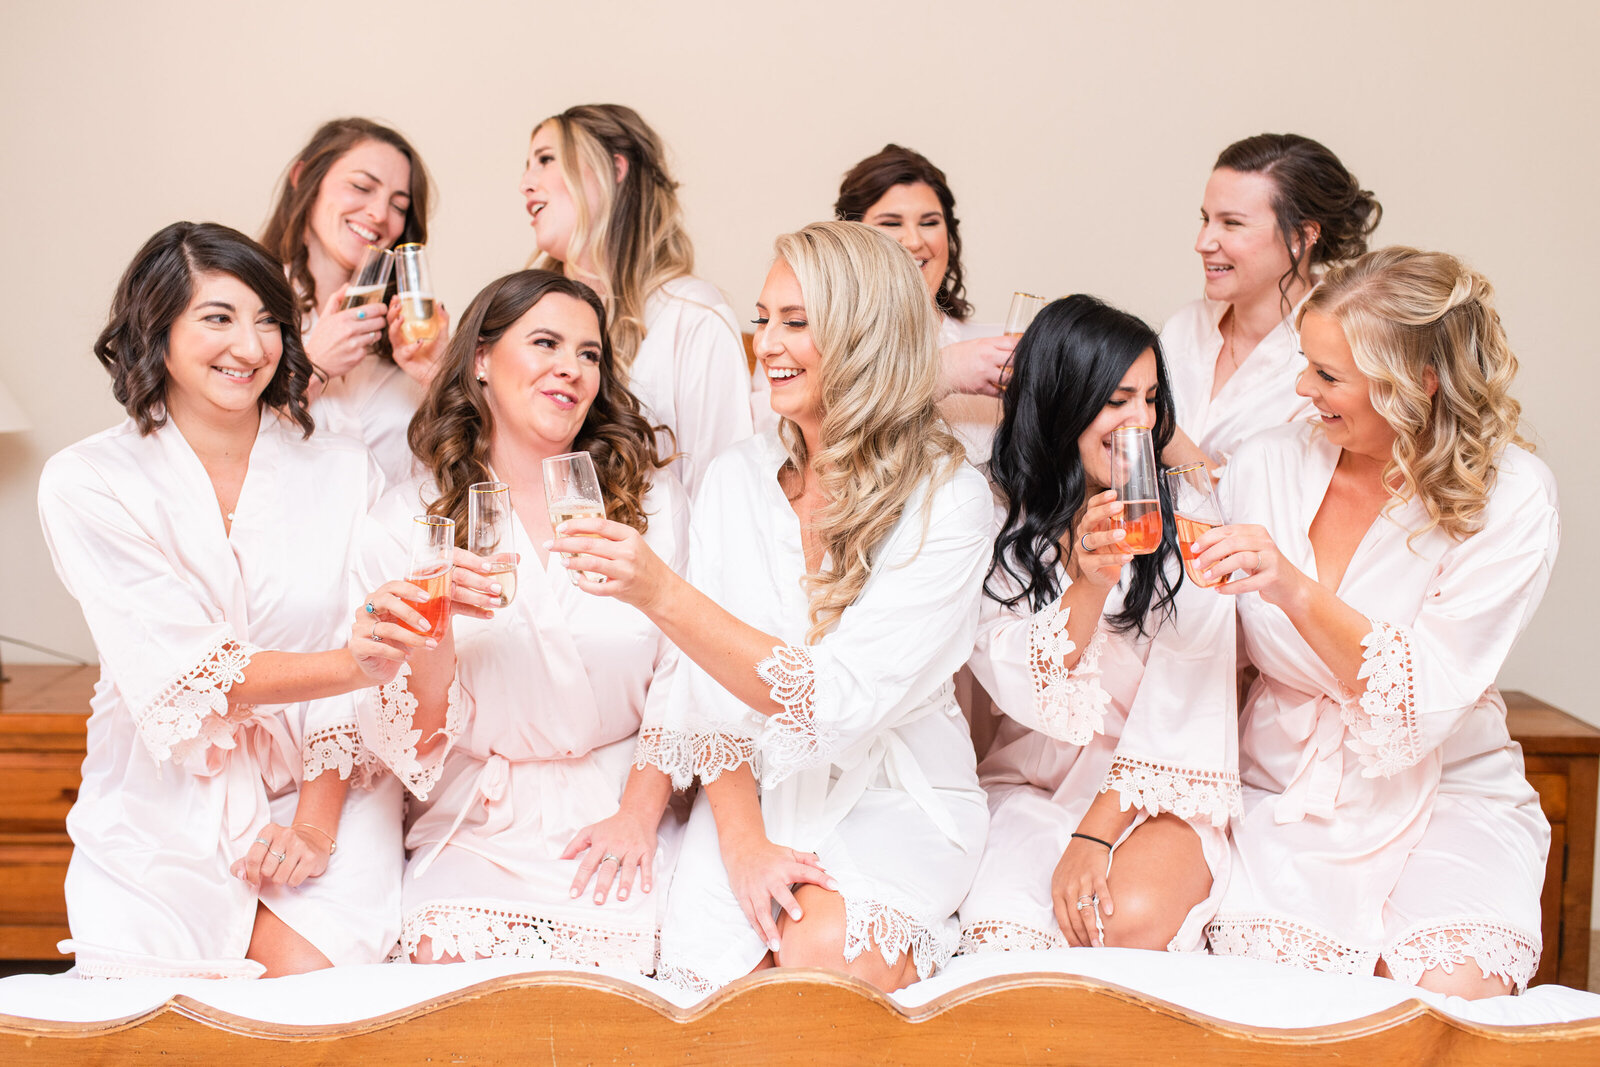 bride with bridesmaids in matching robes toasting with champagne